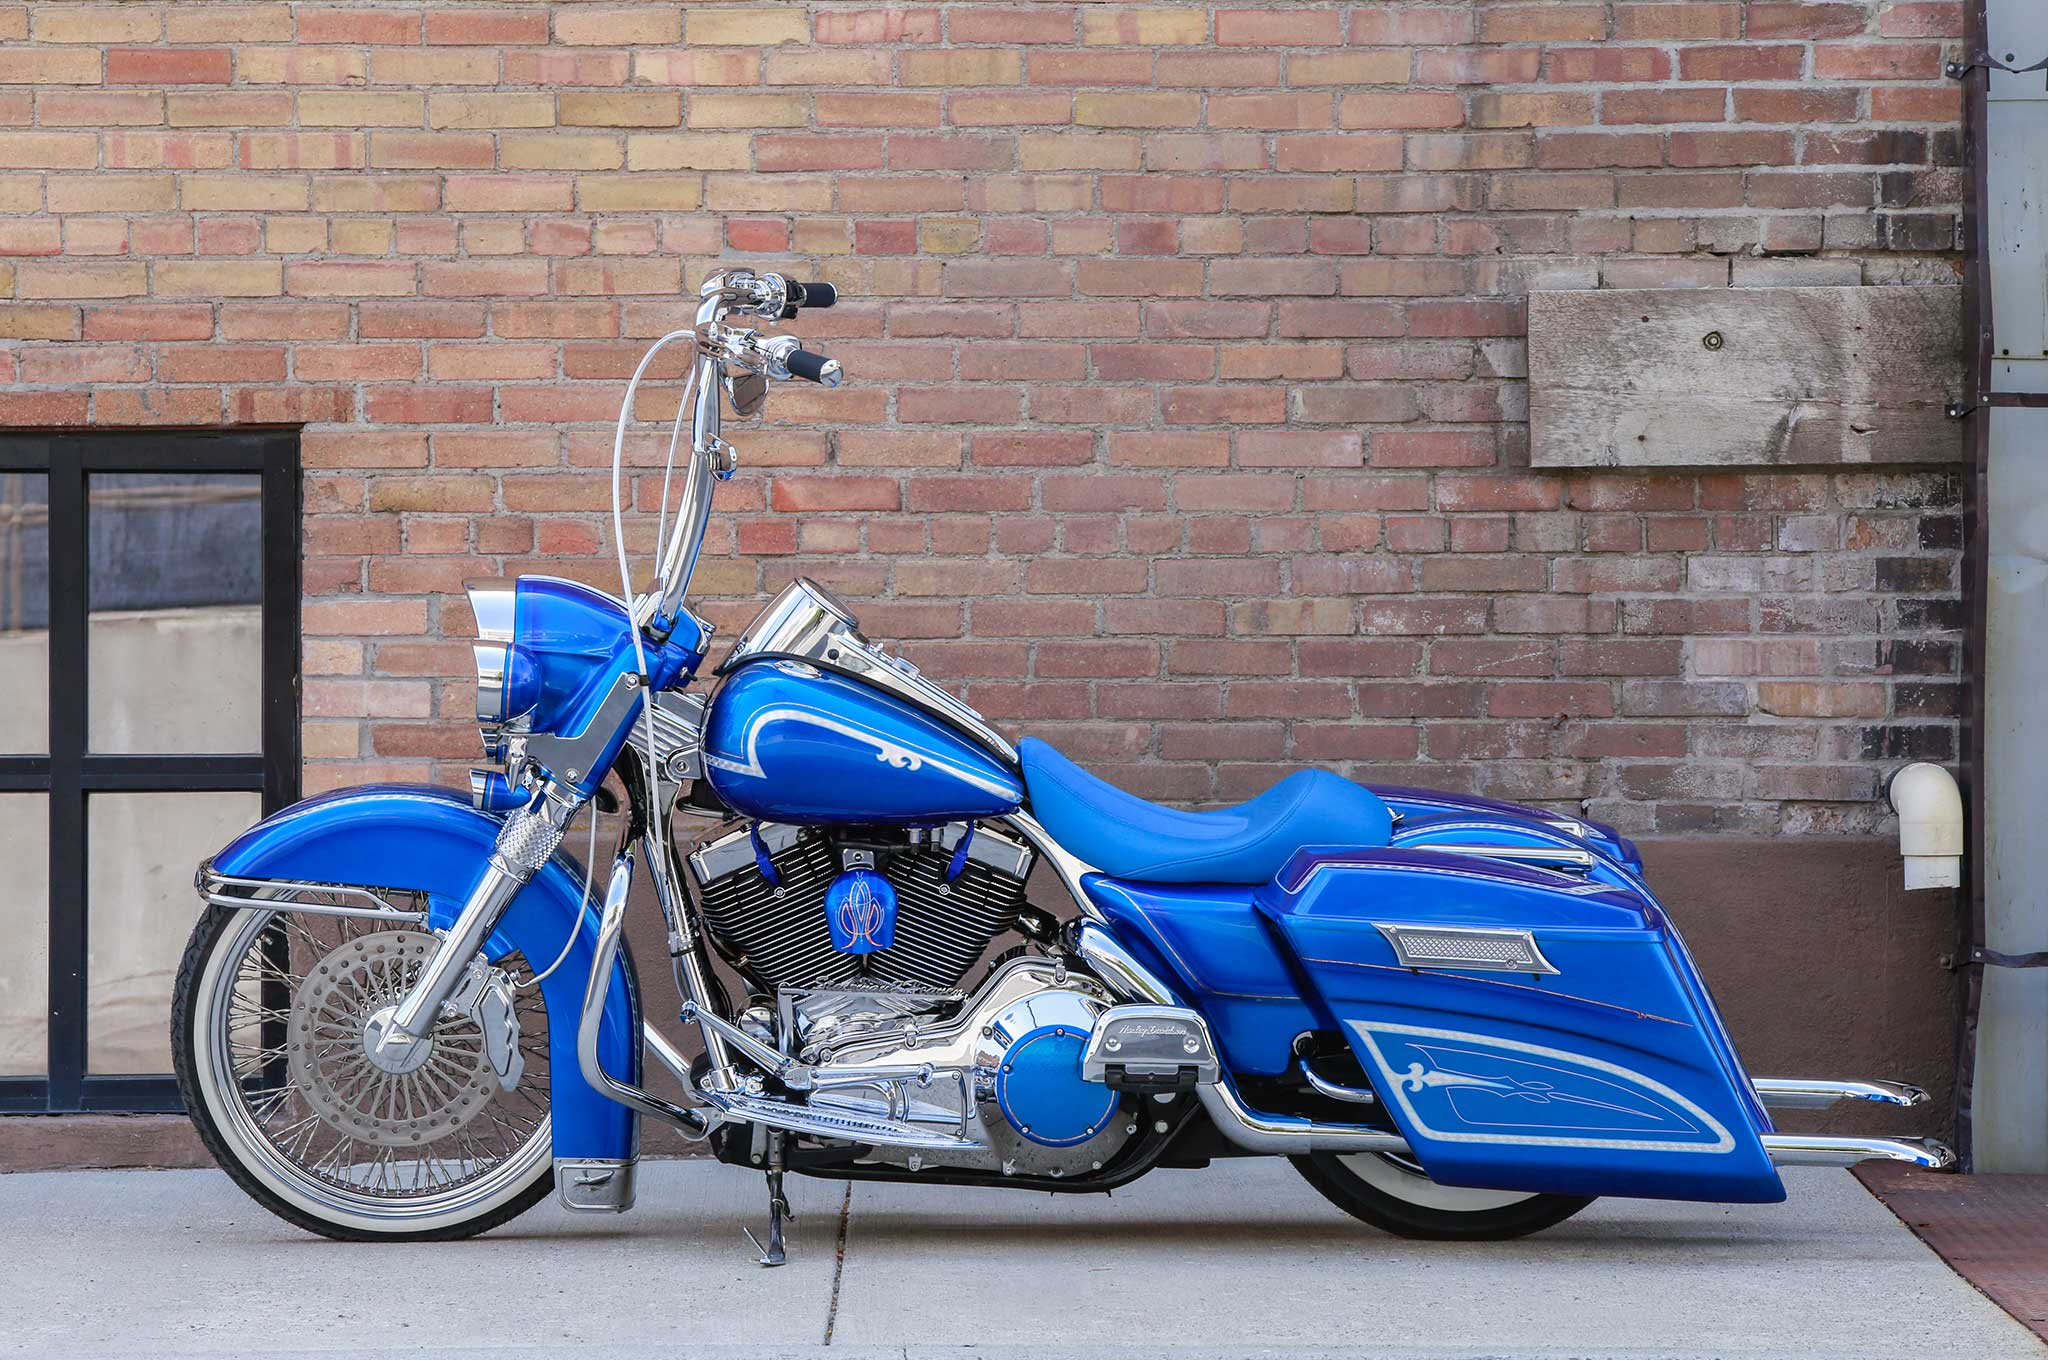 How To Put Air In Car Tires >> 2001 Harley Davidson Road King - Stairway to Heaven